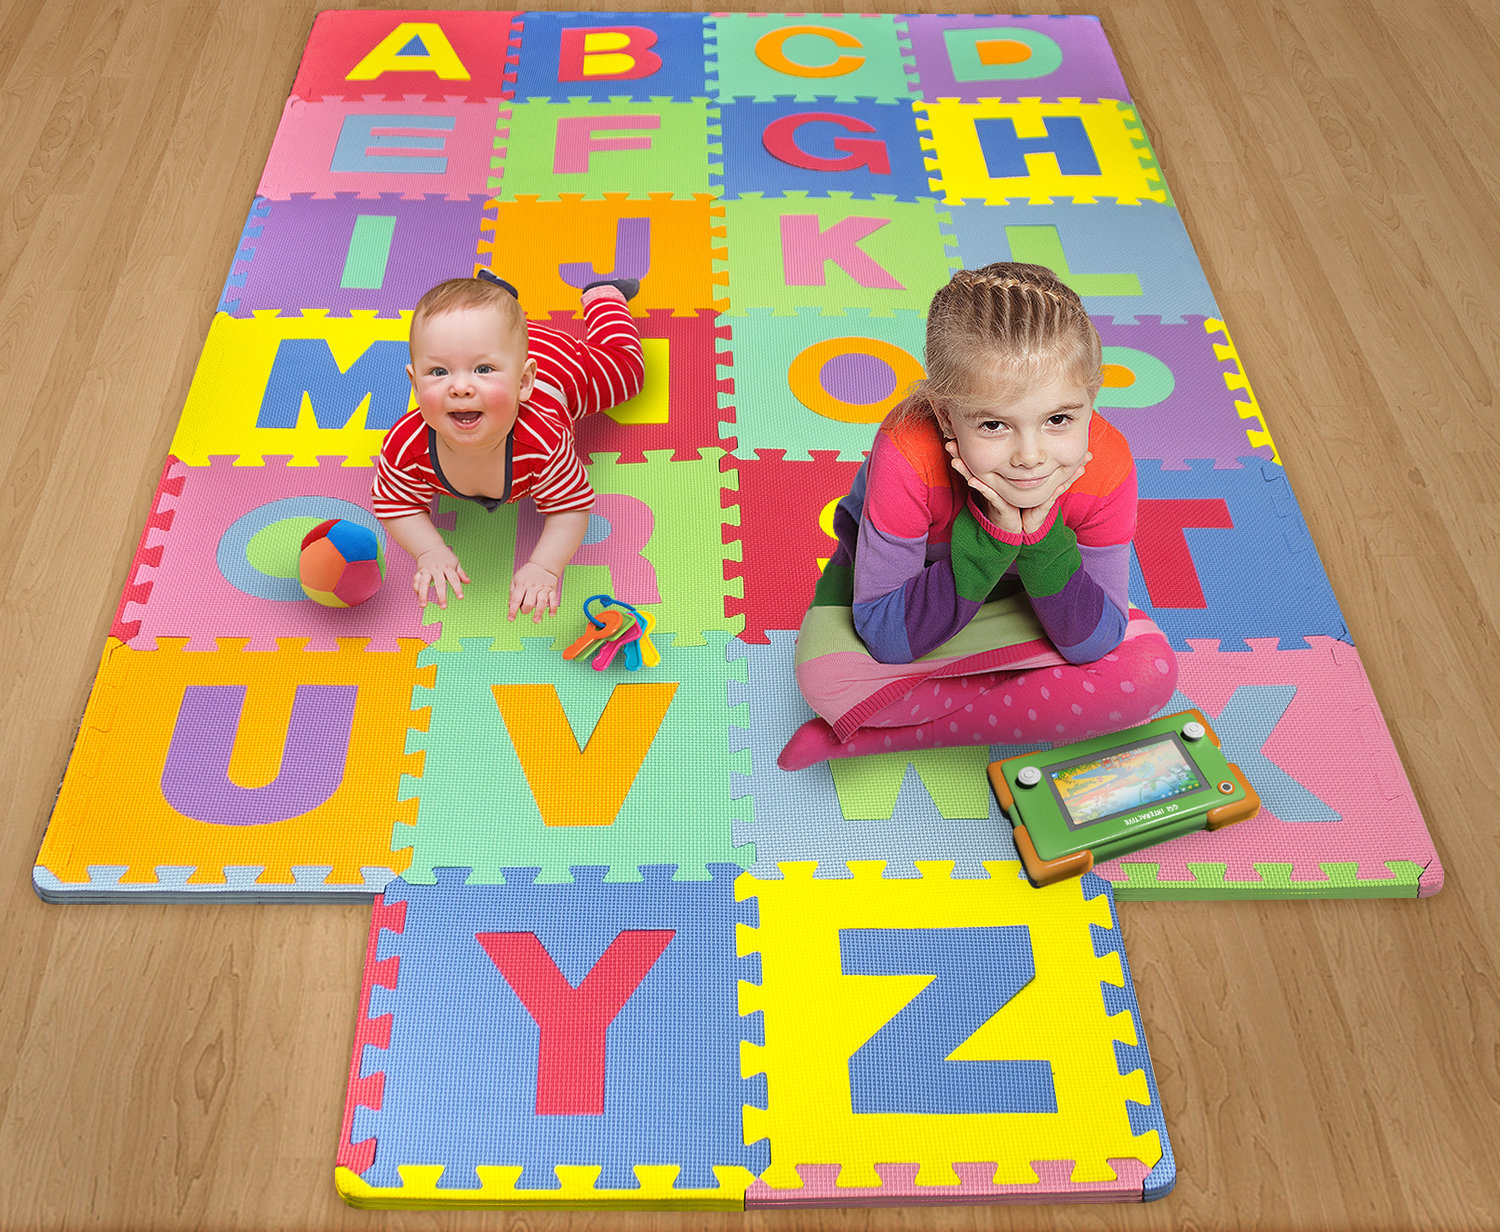 Foam Mat Of Alphabet Puzzle Pieces Great For Kids To Learn And Play Interlocking Puzzle Pieces Matney